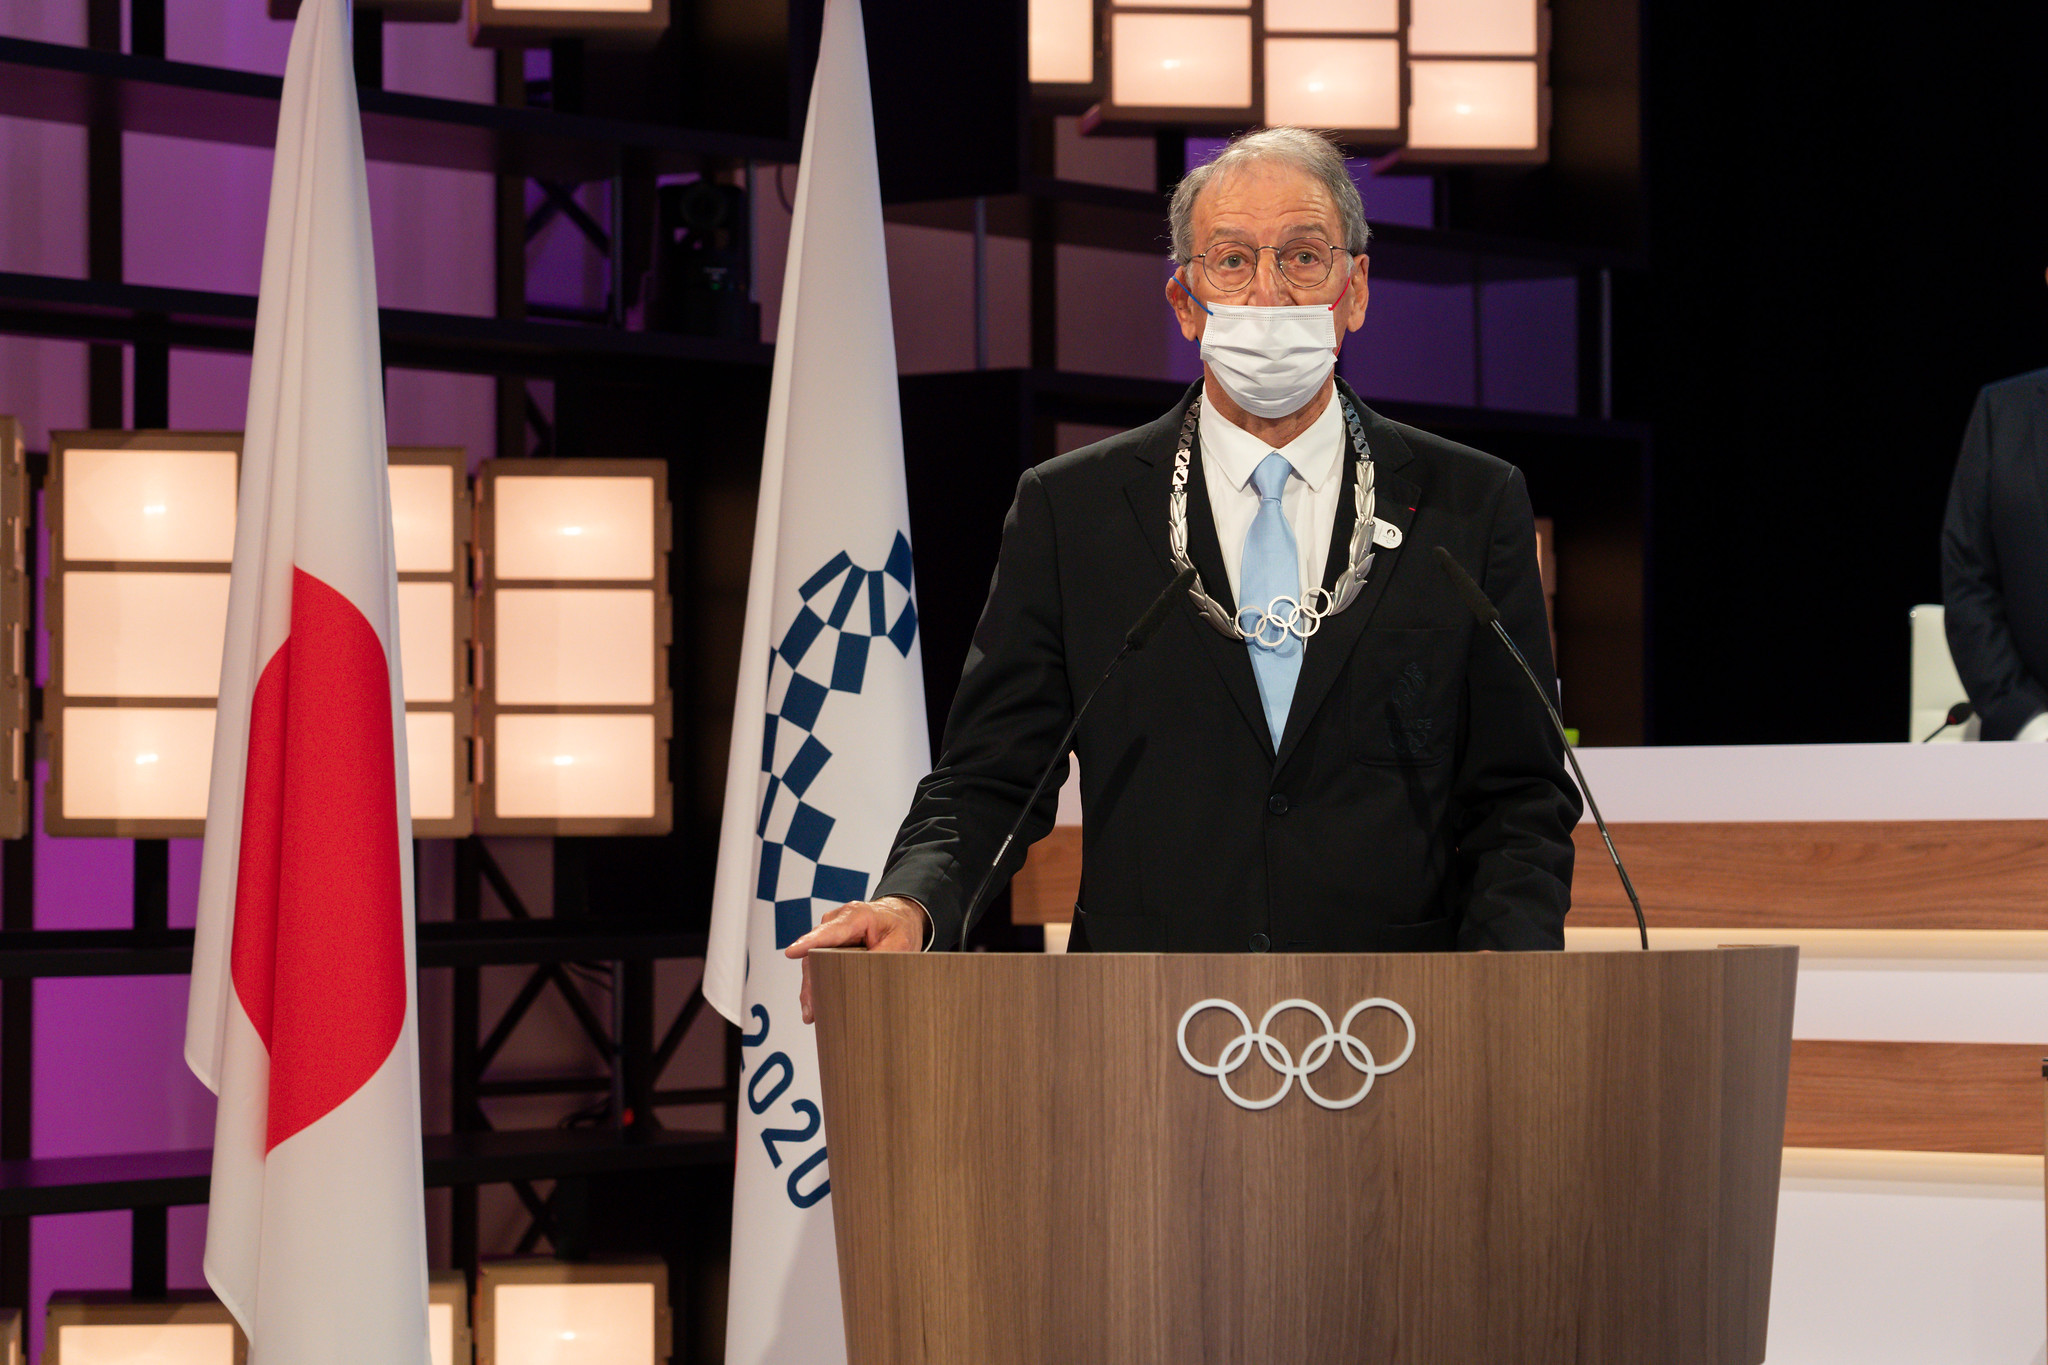 Denis Masseglia has been awarded the Olympic Order ©IOC